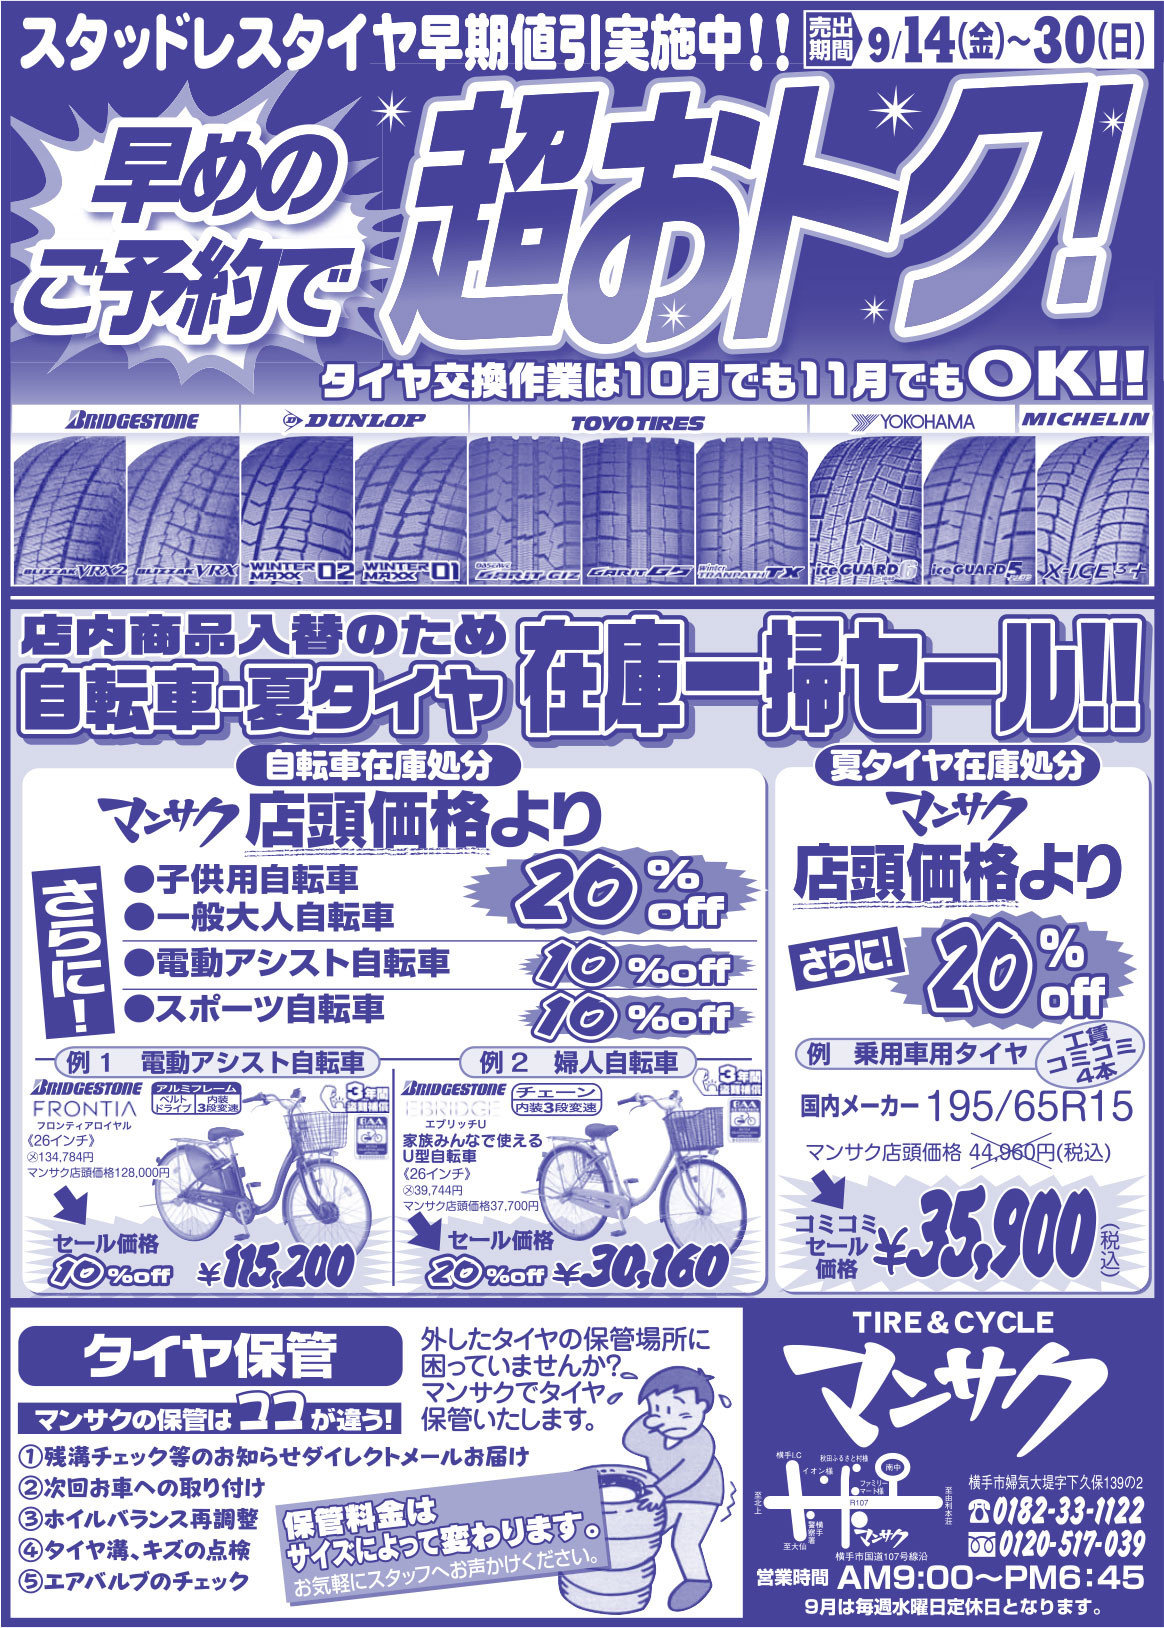 TIRE&CYCLE マンサク 様